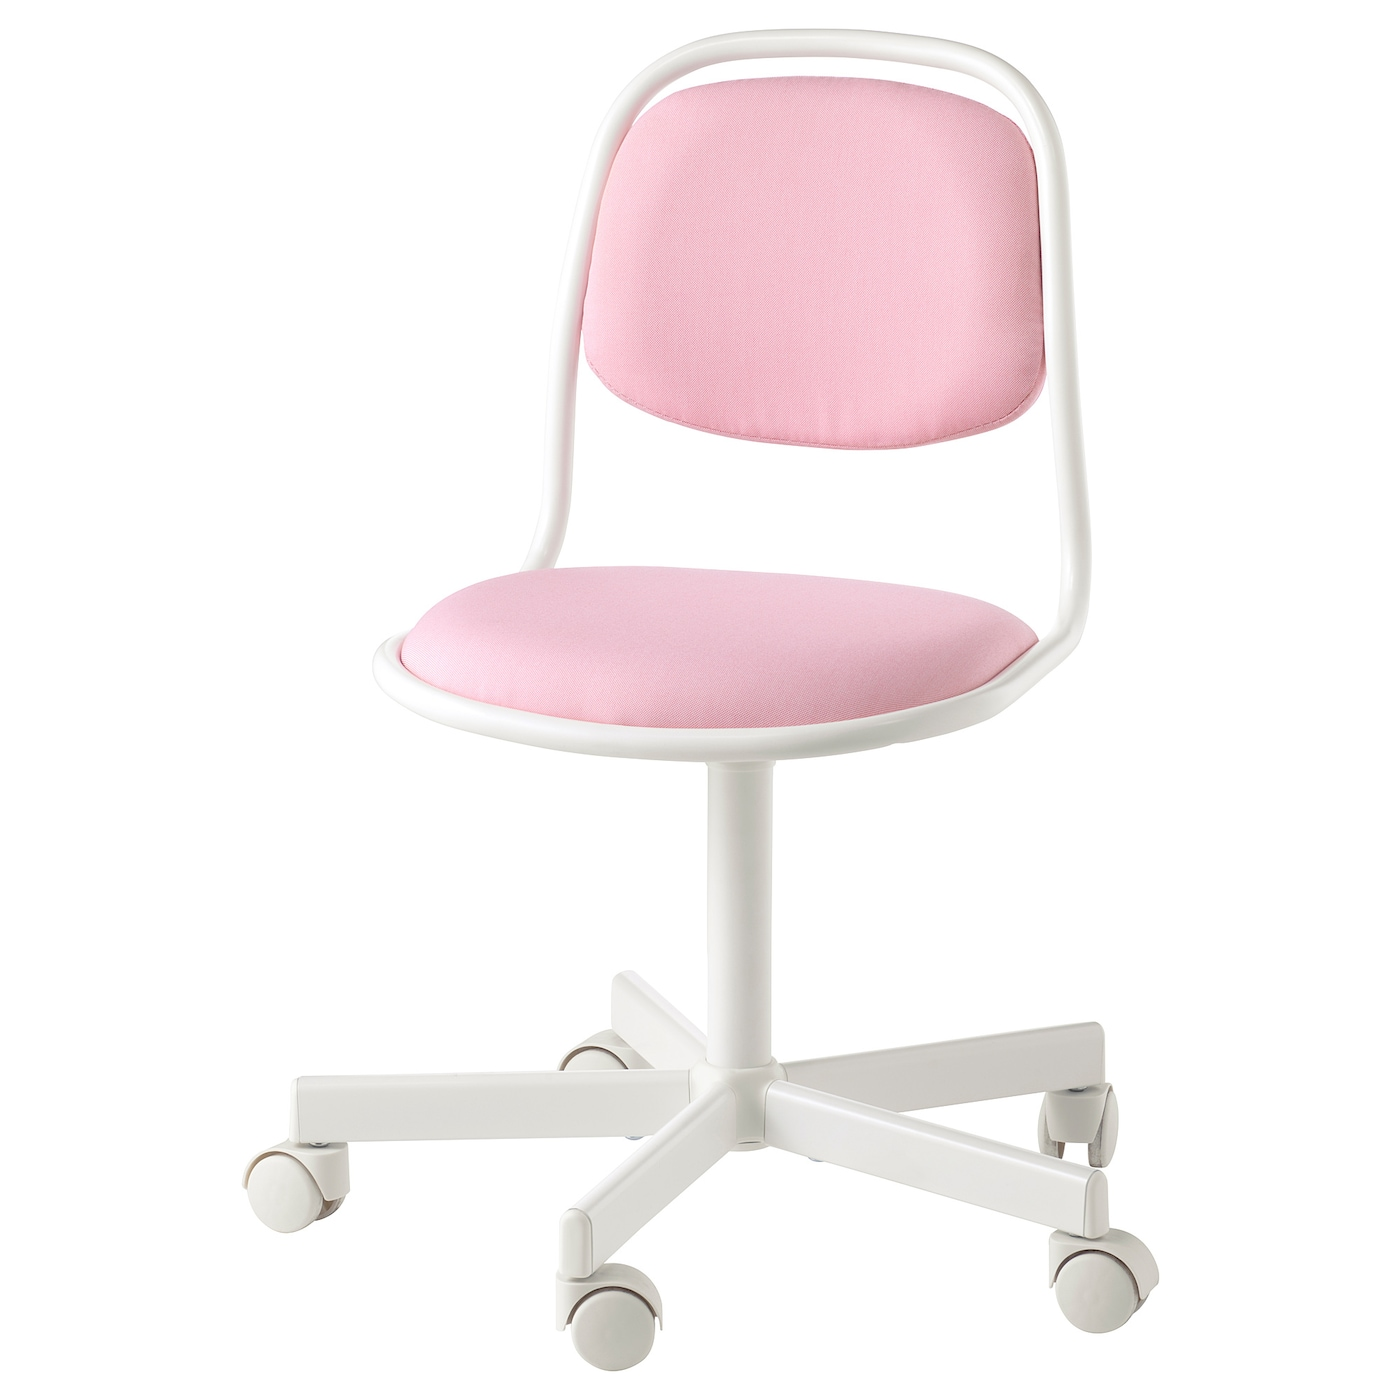 Beau IKEA ÖRFJÄLL Childrenu0027s Desk Chair You Sit Comfortably Since The Chair Is  Adjustable In Height.